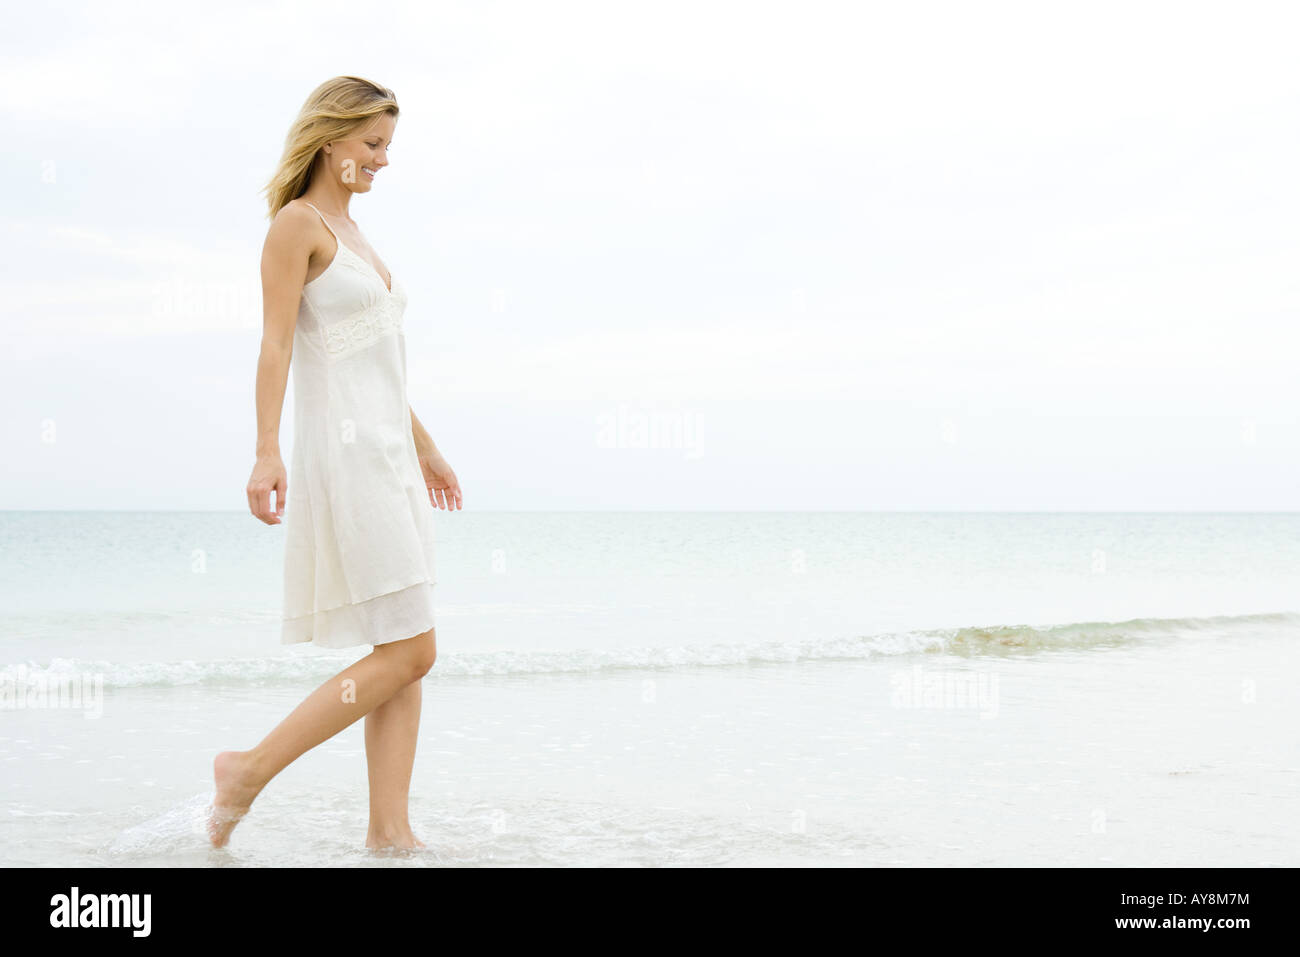 Young woman in sundress walking in surf at beach, smiling, full length - Stock Image